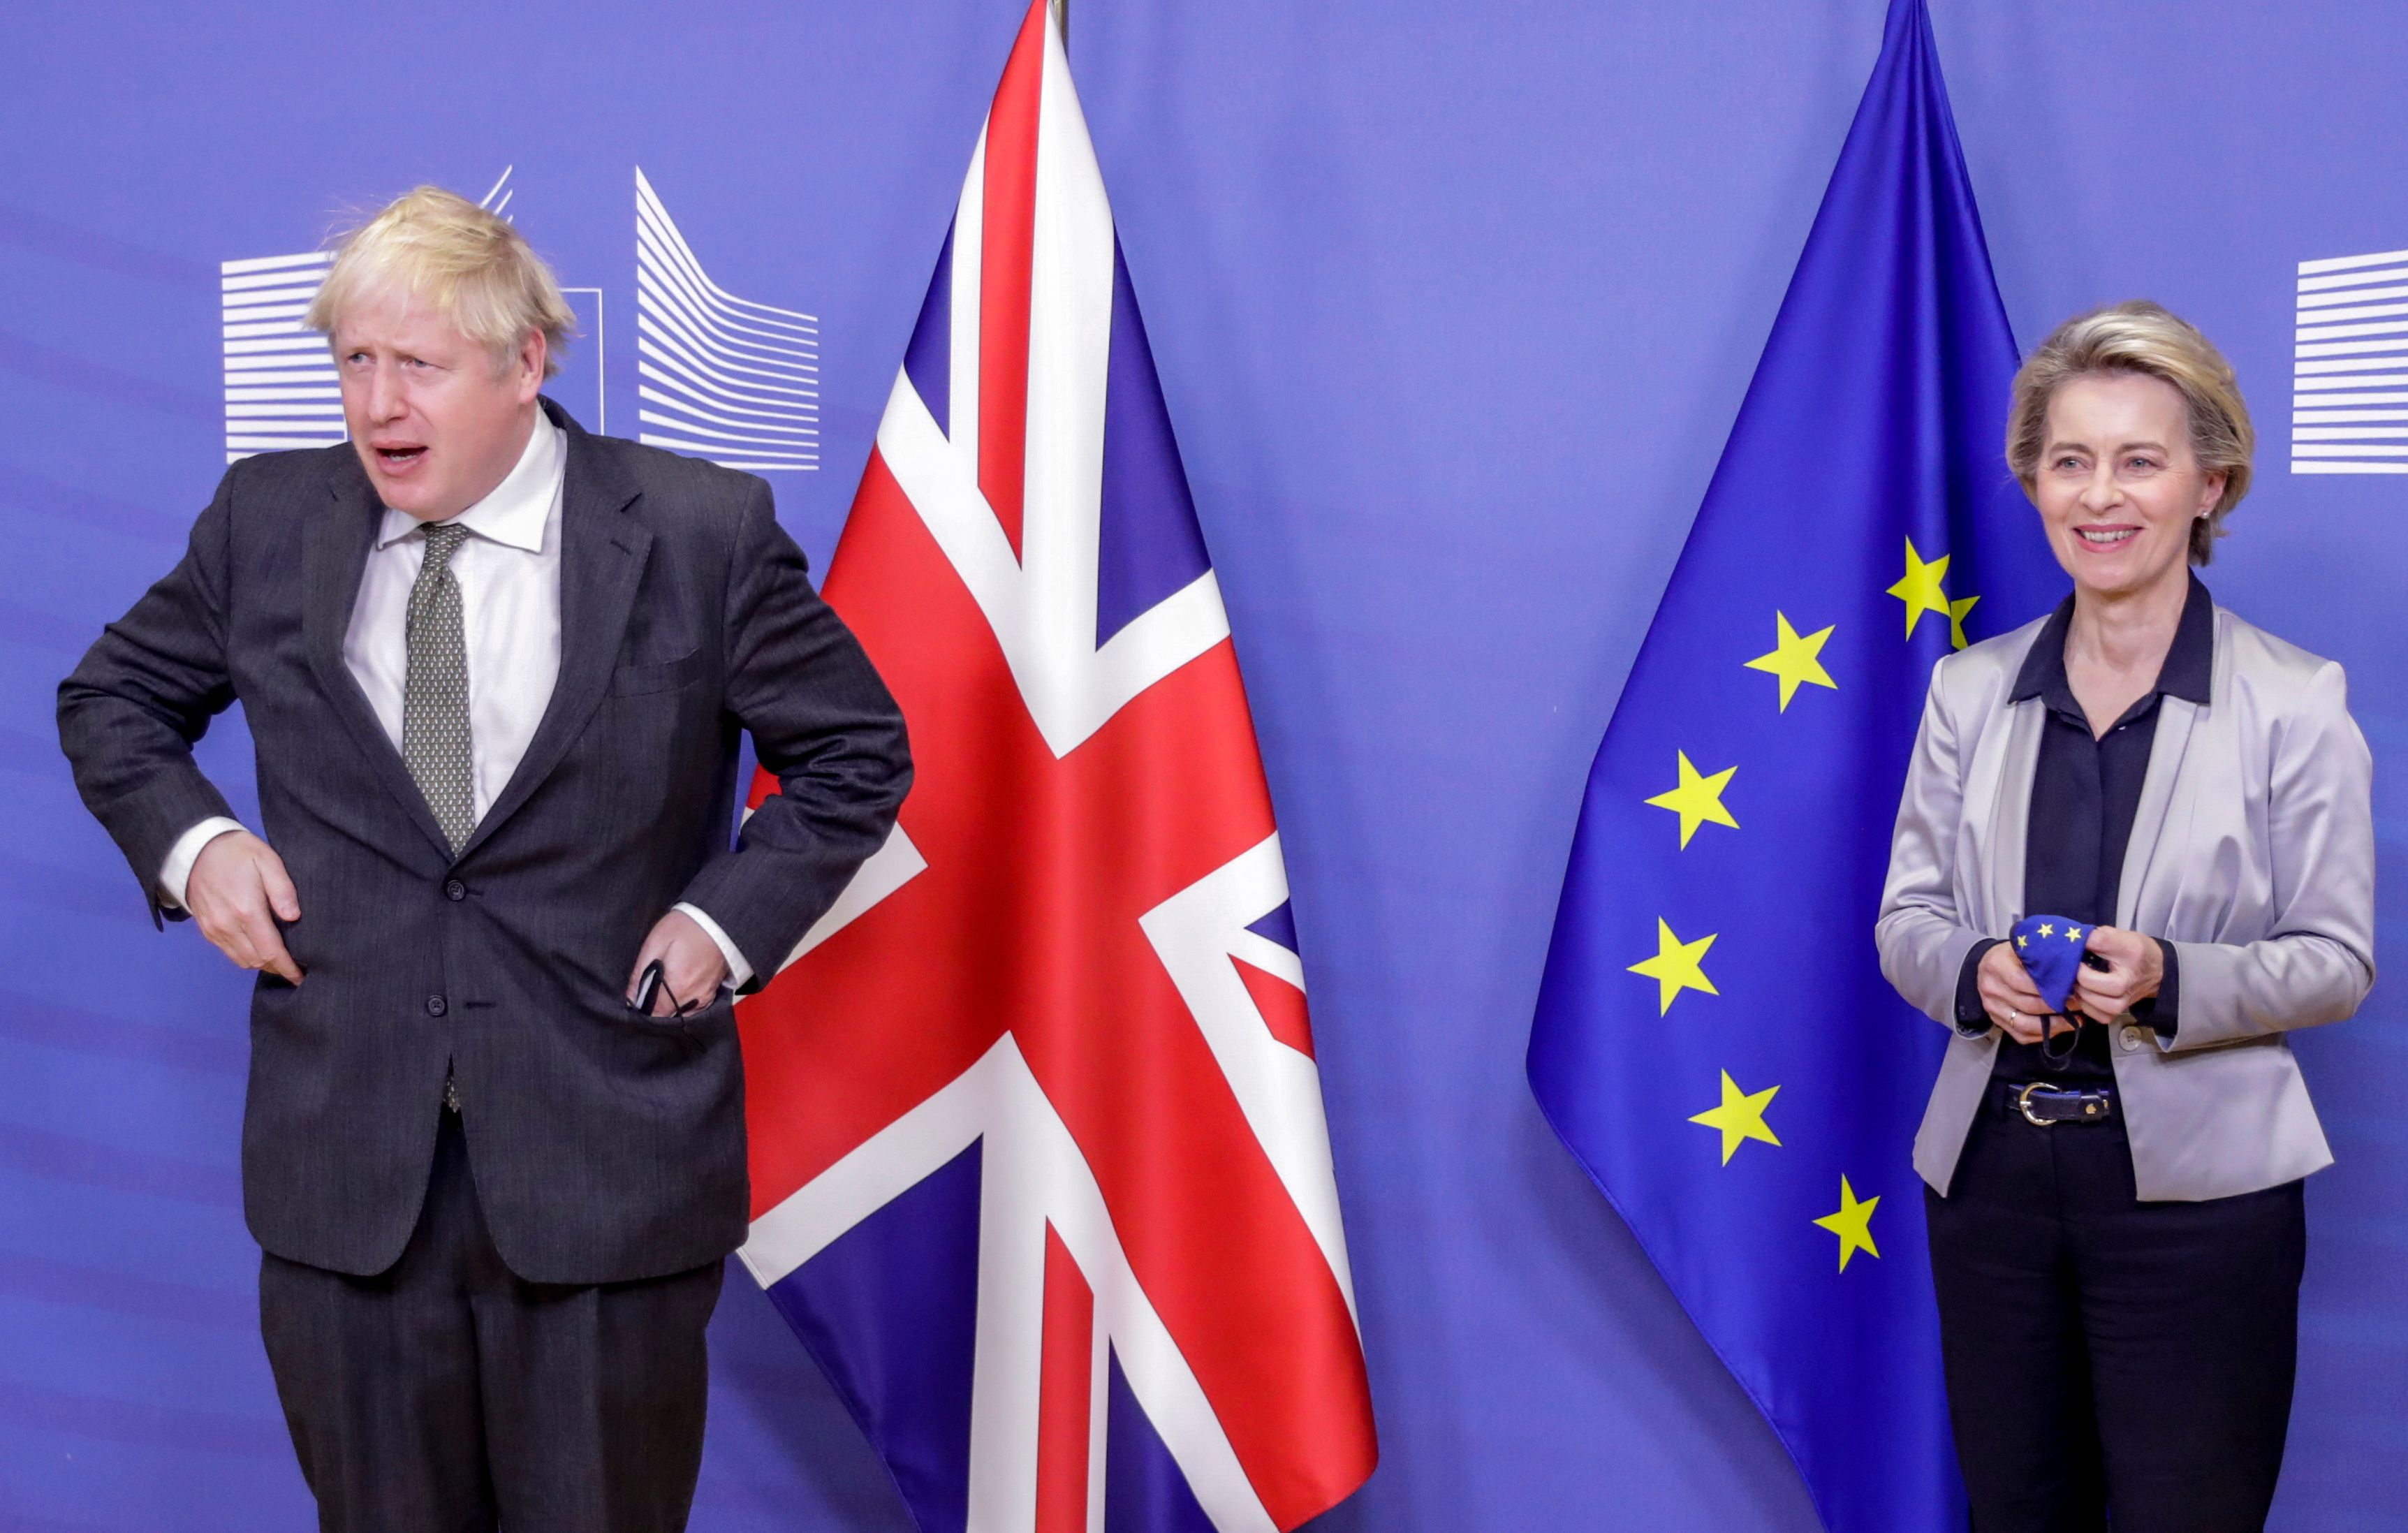 Britain's Prime Minister Boris Johnson (L) is welcomed by European Commission President Ursula von der Leyen (R) in the Berlaymont building at the EU headquarters in Brussels on December 9, 2020, prior to a post-Brexit talks' working dinner. - Britain's Prime Minister arrives in Brussels on December 9, 2020, with hopes for a post-Brexit trade deal hanging on crisis talks with EU chief. Talks are blocked over the issue of fair competition, with Britain refusing to accept a mechanism that would allow the EU to respond swiftly if UK and EU business rules diverge over time and put European firms at a disadvantage. (Photo by Olivier HOSLET / POOL / AFP) (Photo by OLIVIER HOSLET/POOL/AFP via Getty Images)